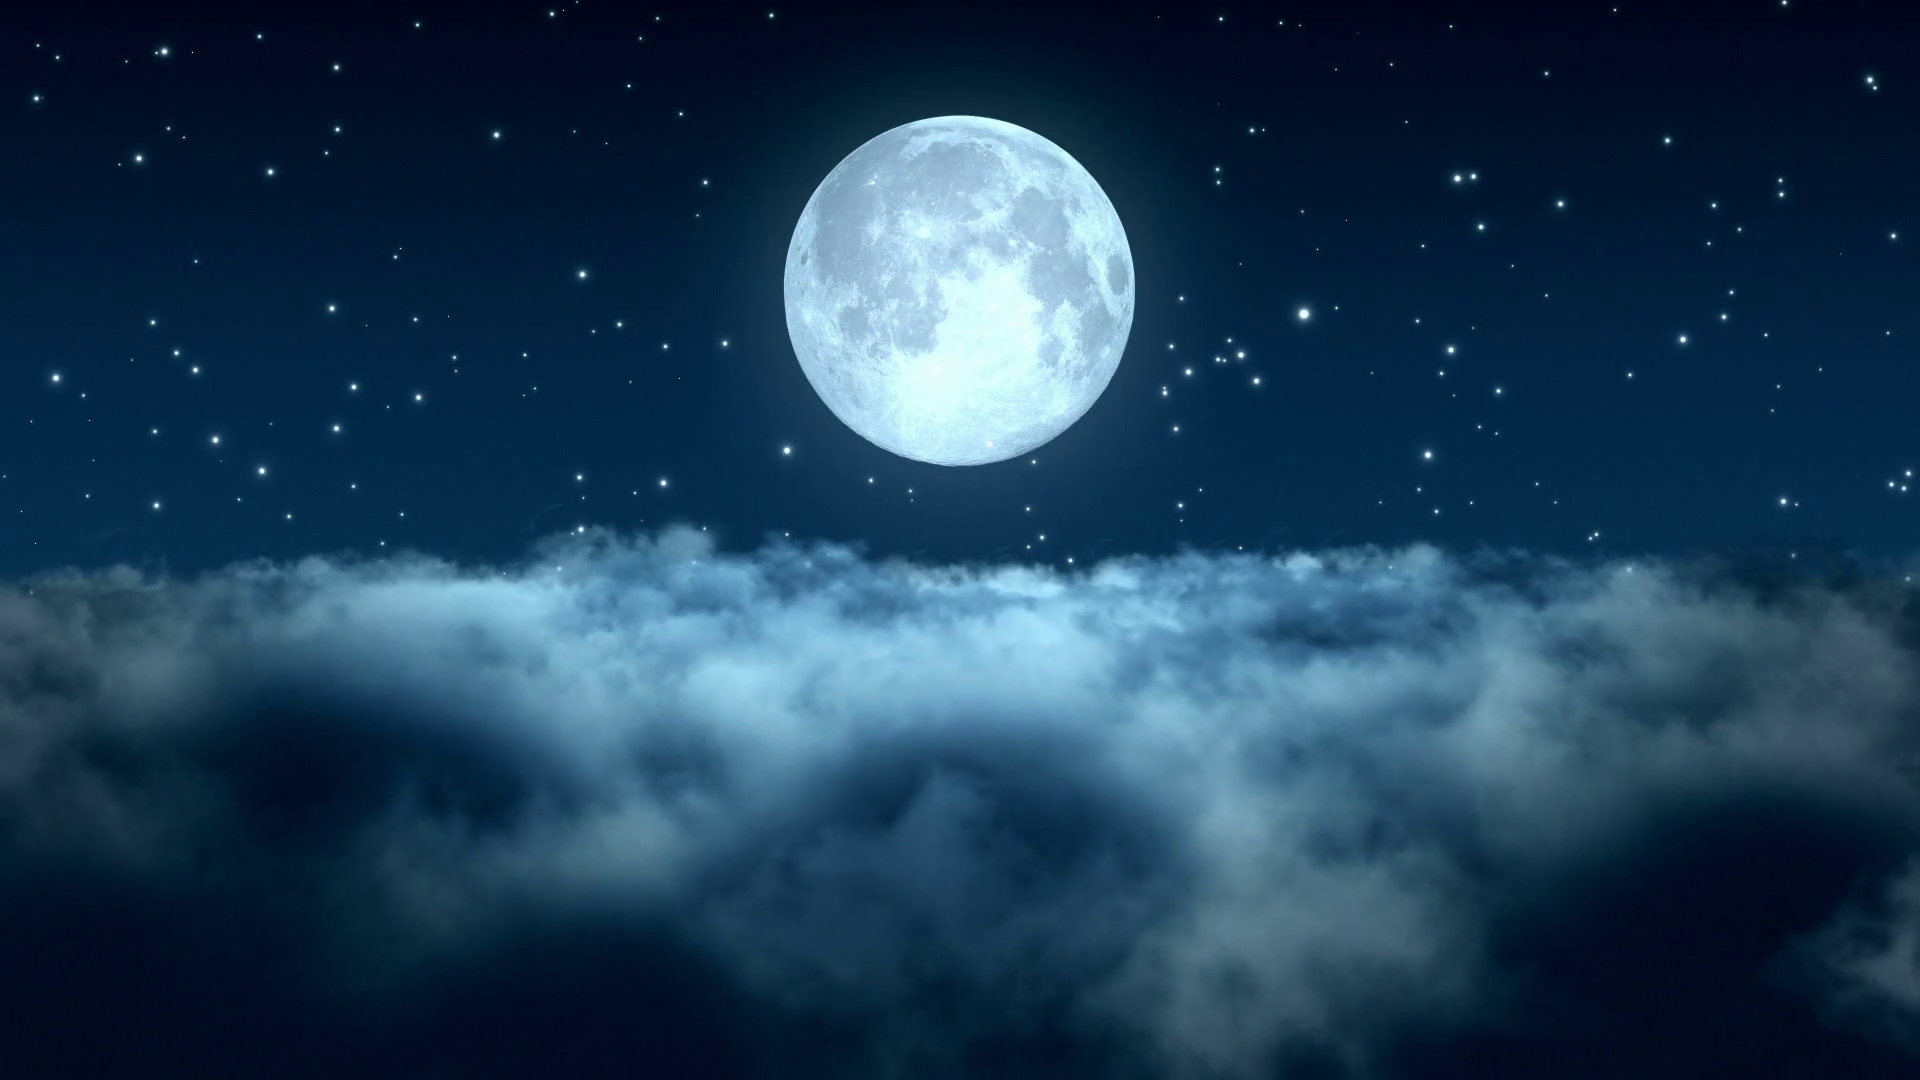 Flying Through Dense Clouds at Night with Beautiful Full Moon and Twinkling  Stars in The Background | Seamless Looping | Motion Backdrop | Full HD 1920  X PlusPng.com  - Moon And Star PNG HD